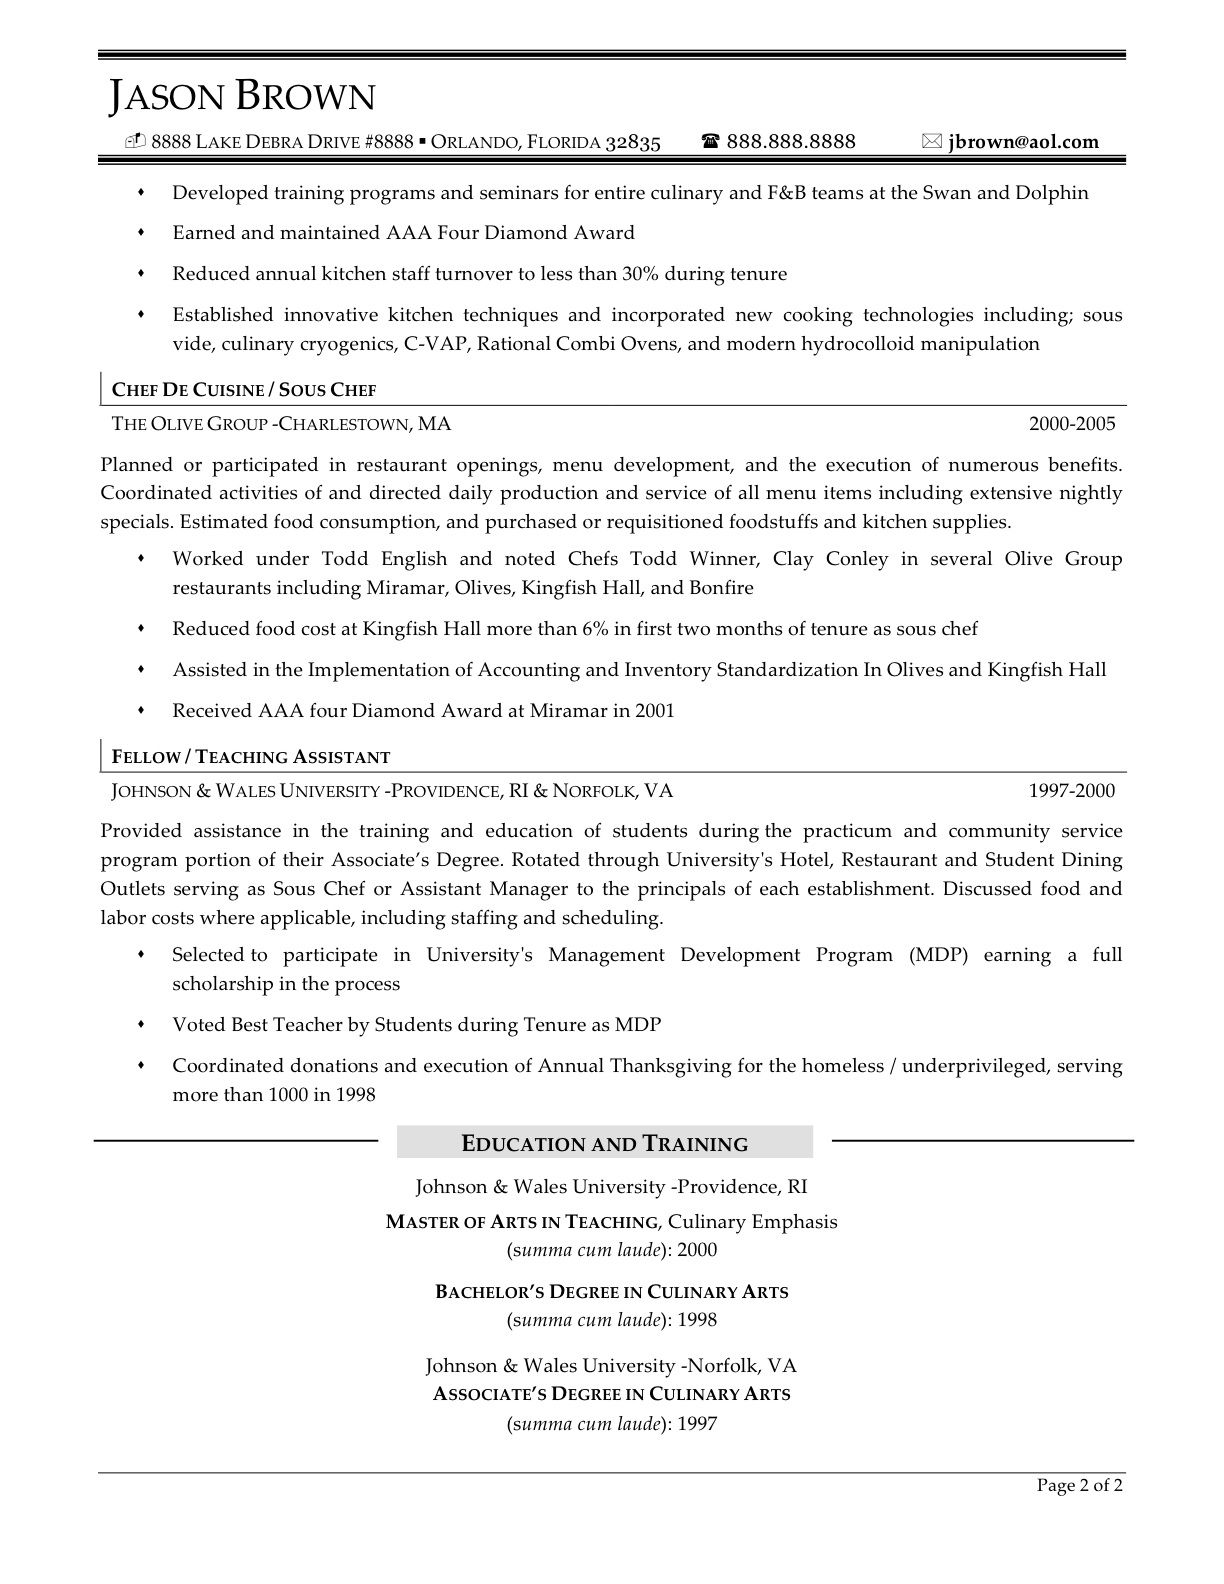 chef cook resume examples     jobresume website  chef